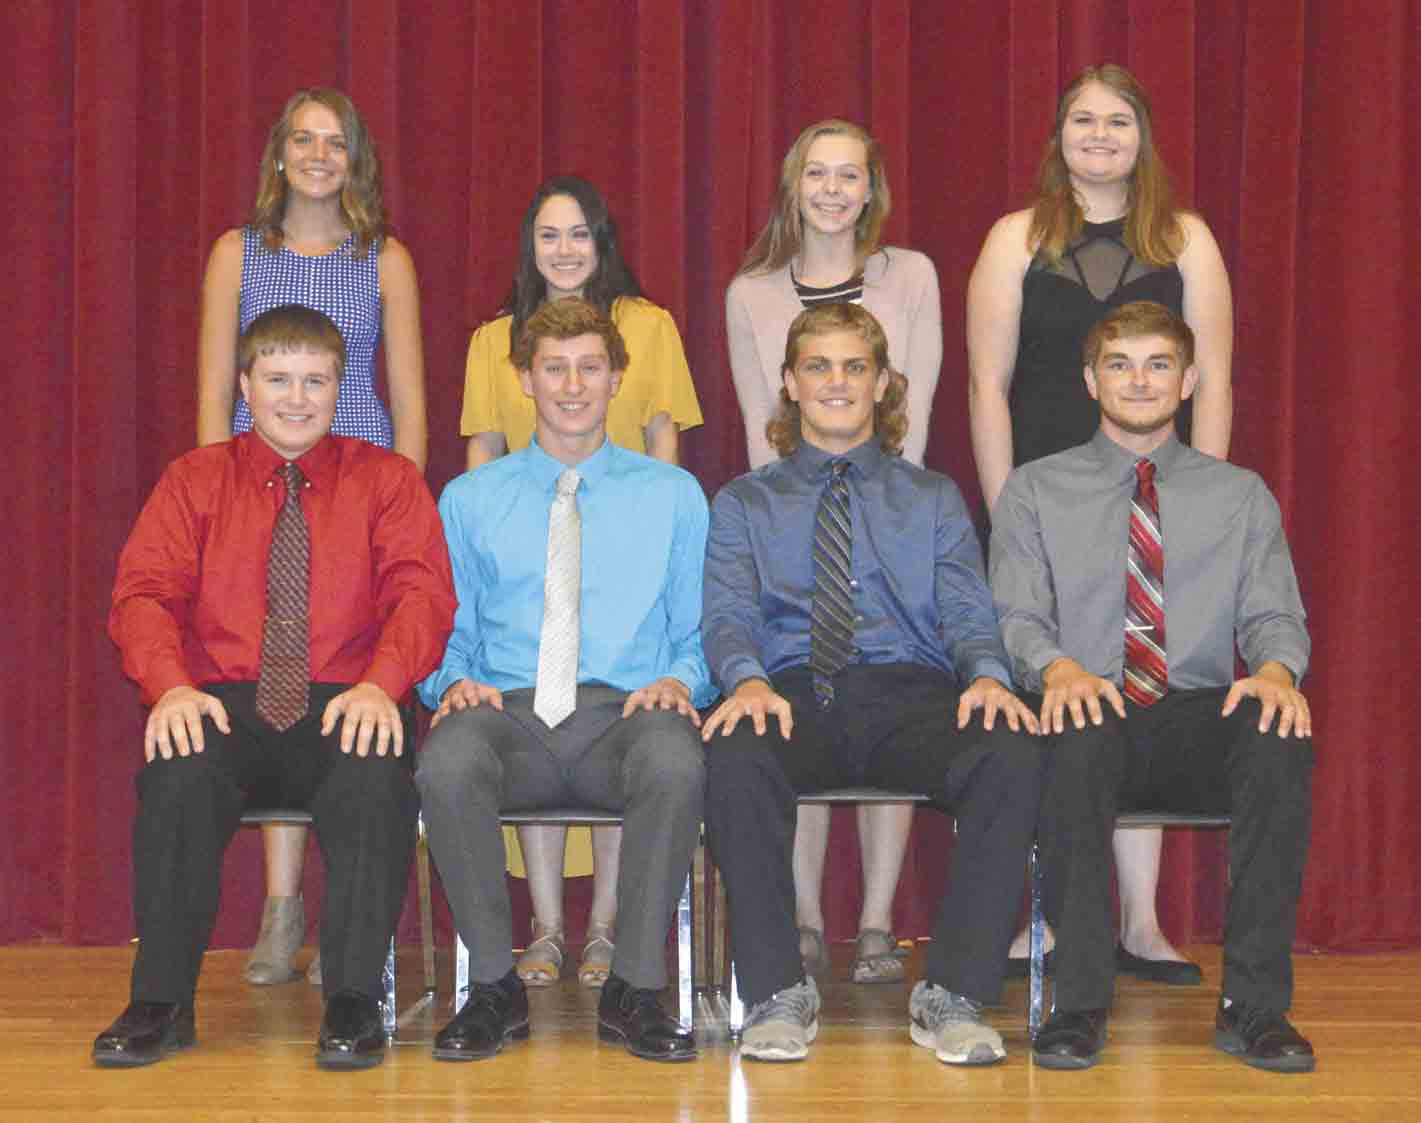 North Fayette Valley is celebrating Homecoming Week, Monday-Friday, Sept. 18-22, with a Homecoming parade and community pep rally at 7 p.m. Thursday, Sept. 22, on the courthouse square in West Union. The 2017 North Fayette Valley Homecoming Court includes (front, l-r) Gene Anne Berst, Marin...